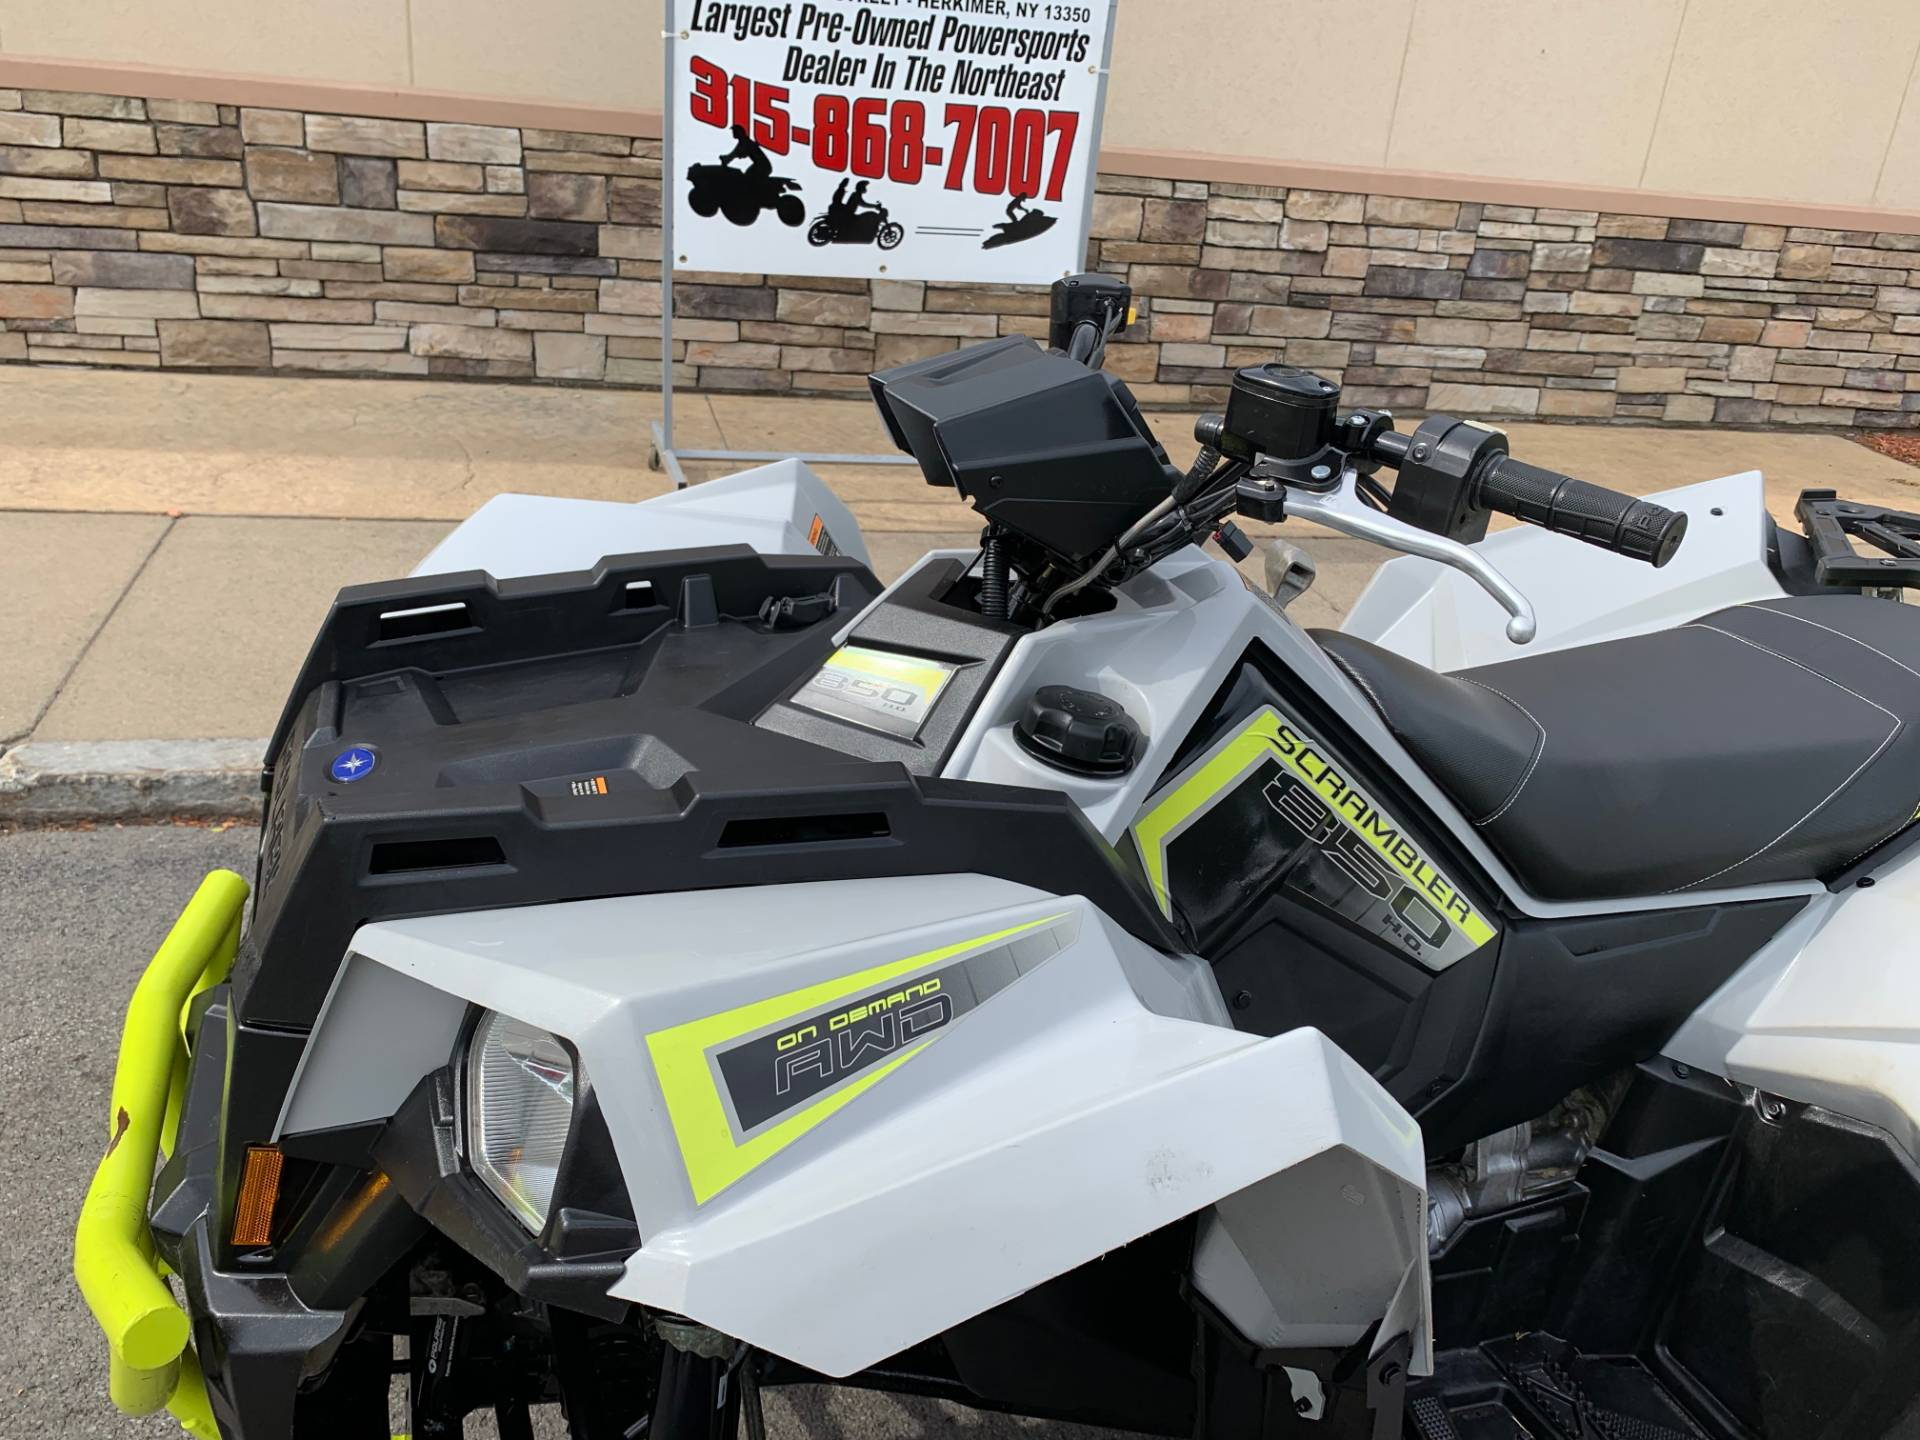 2019 Polaris Scrambler 850 in Herkimer, New York - Photo 15